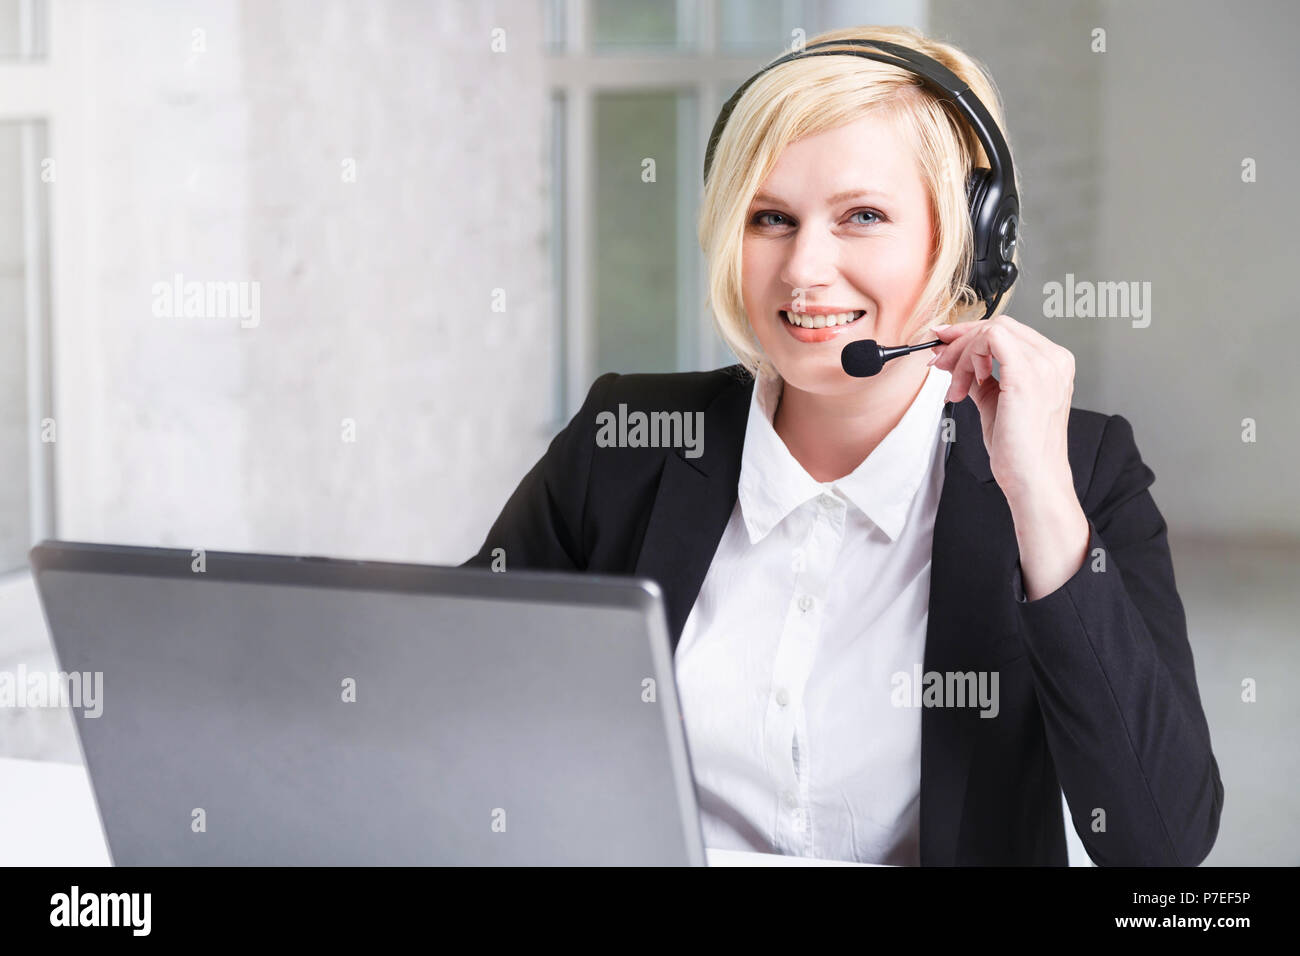 Portrait of beautiful smiling blonde woman, call center operator dressed in black stylish suit with headset earphones working in white office - Stock Image